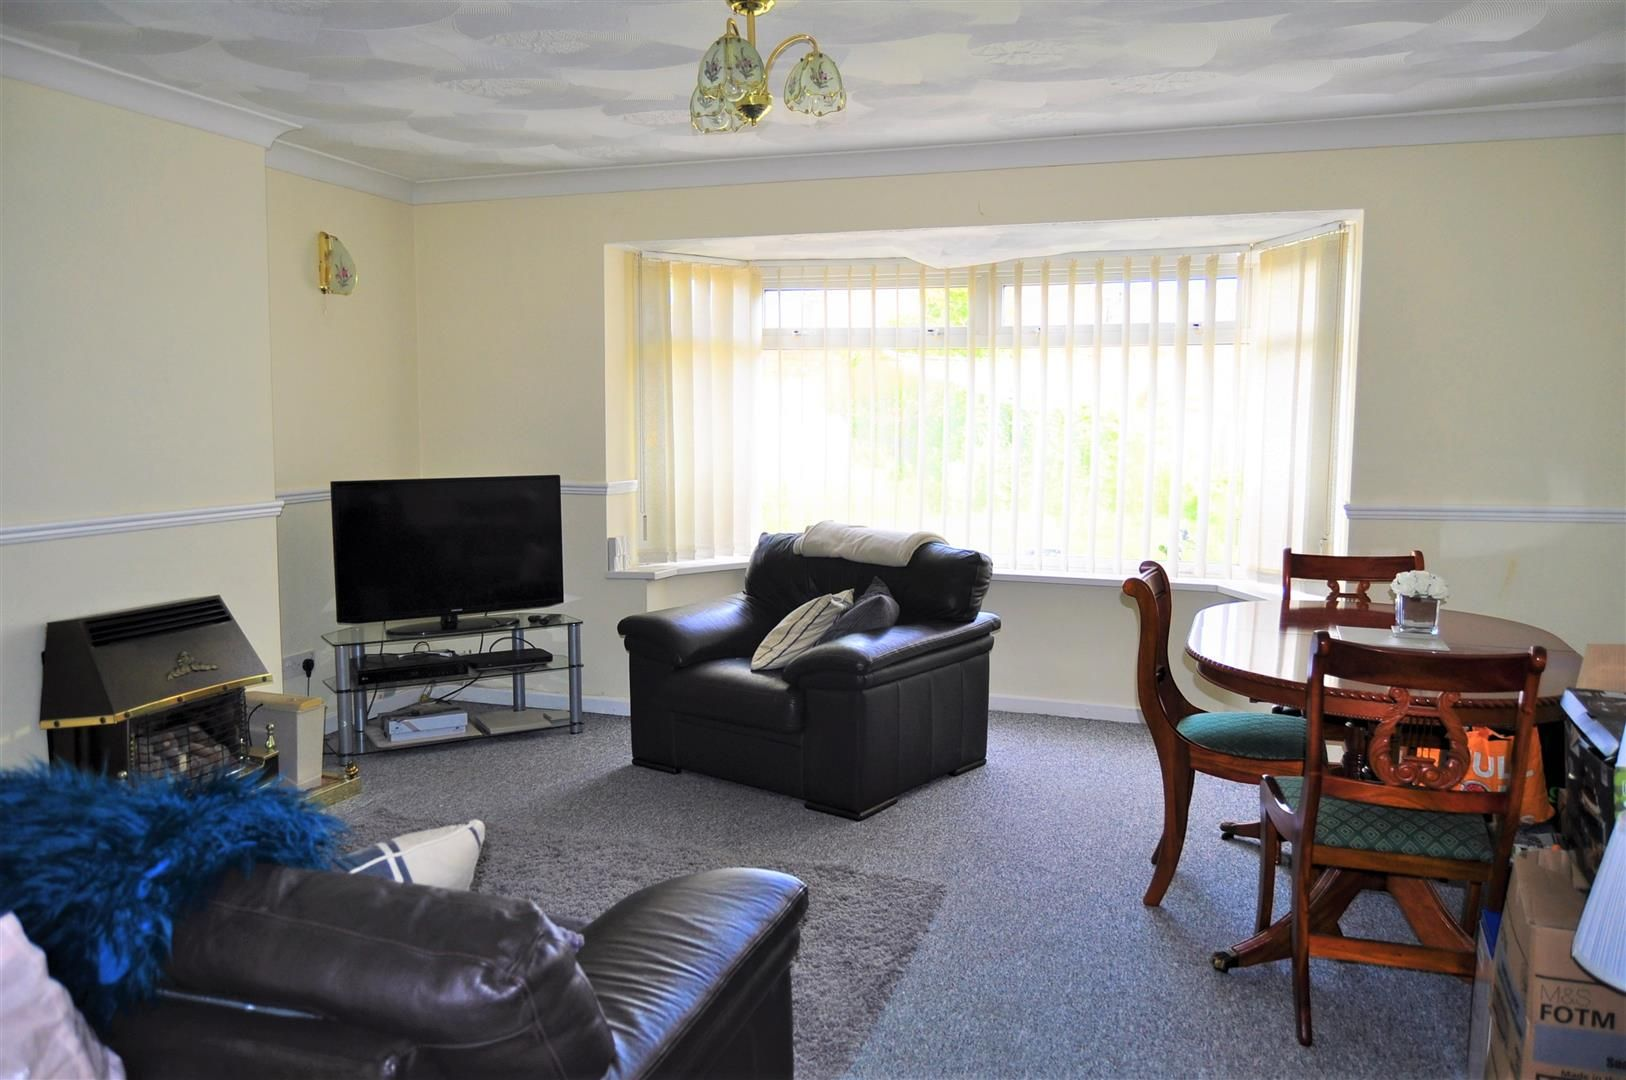 3 bed end-of-terrace for sale in Quinton 2